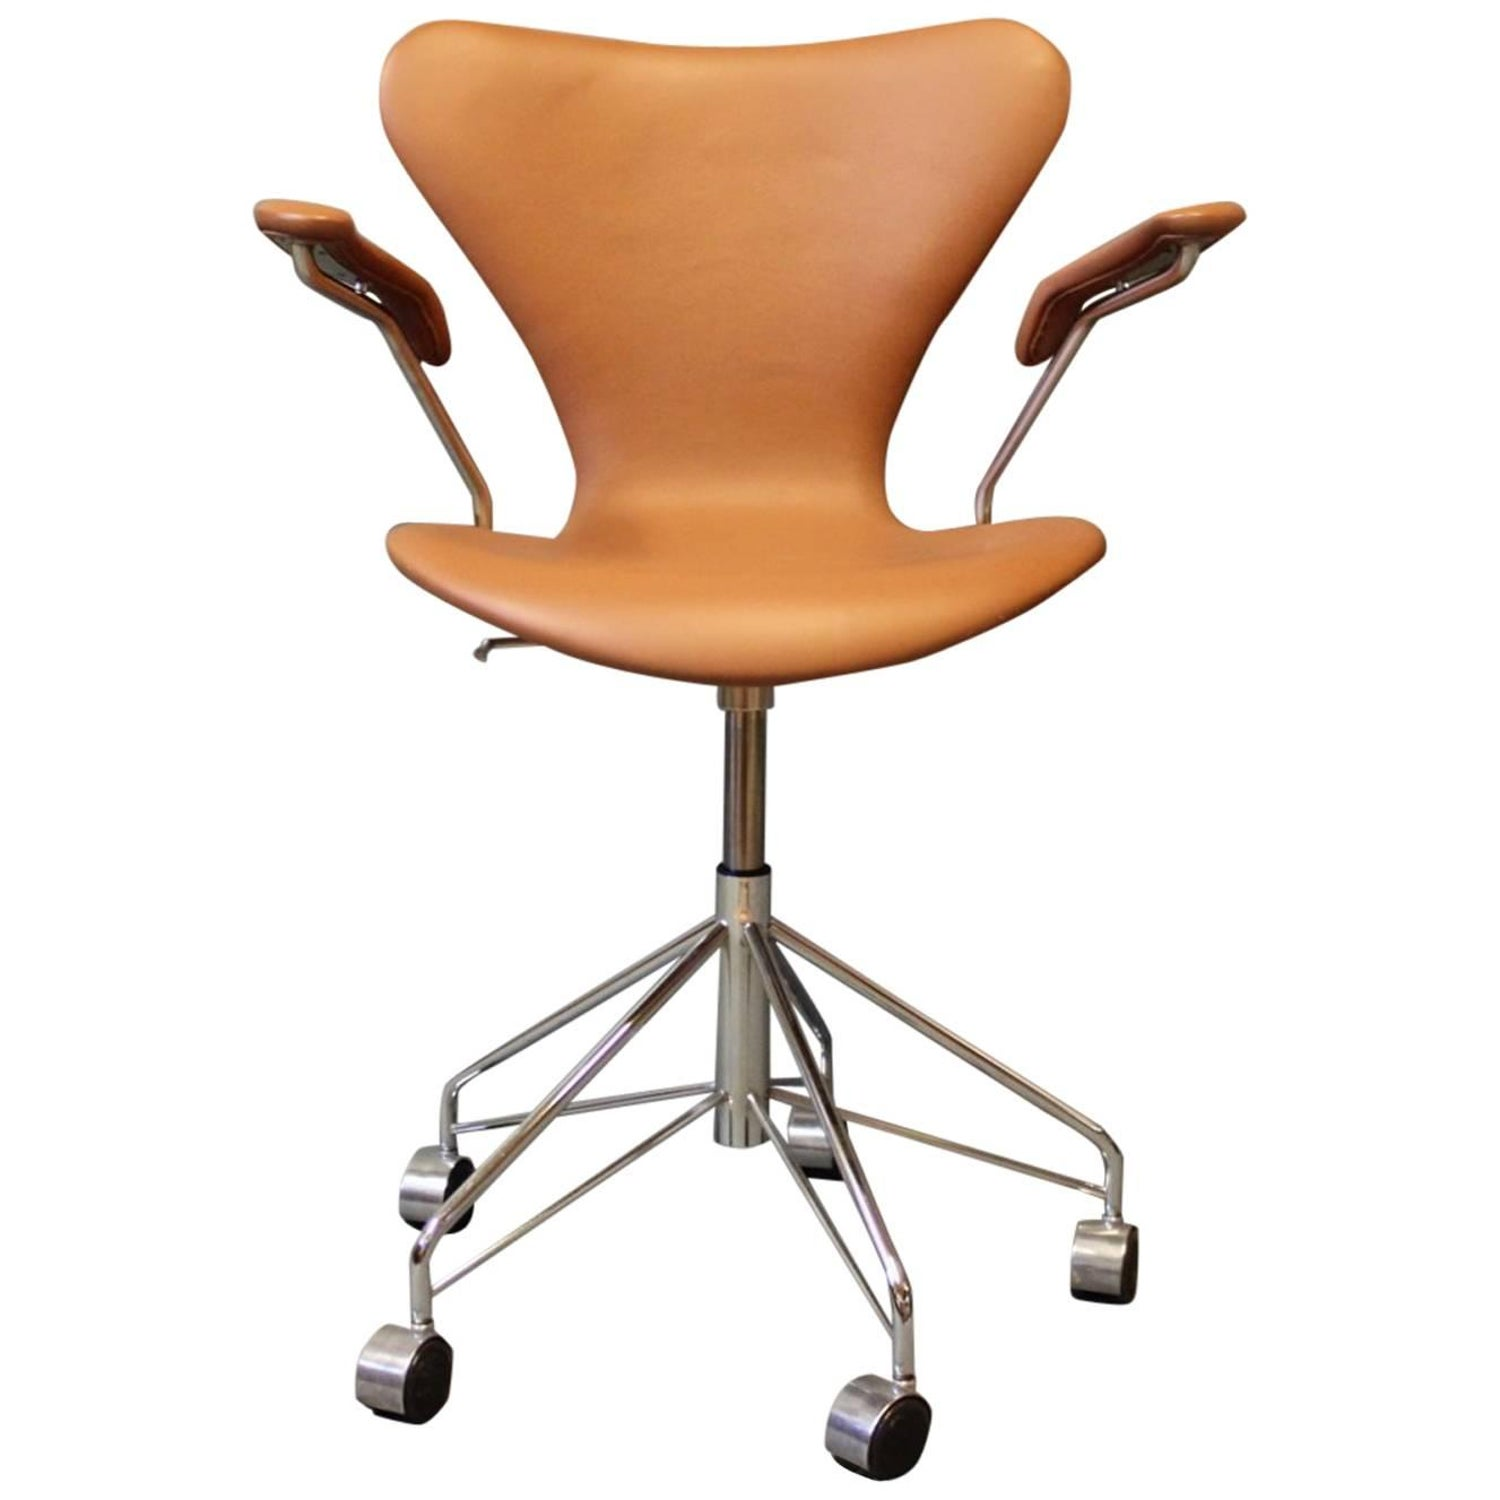 Arne Jacobsen fice Chairs and Desk Chairs 35 For Sale at 1stdibs